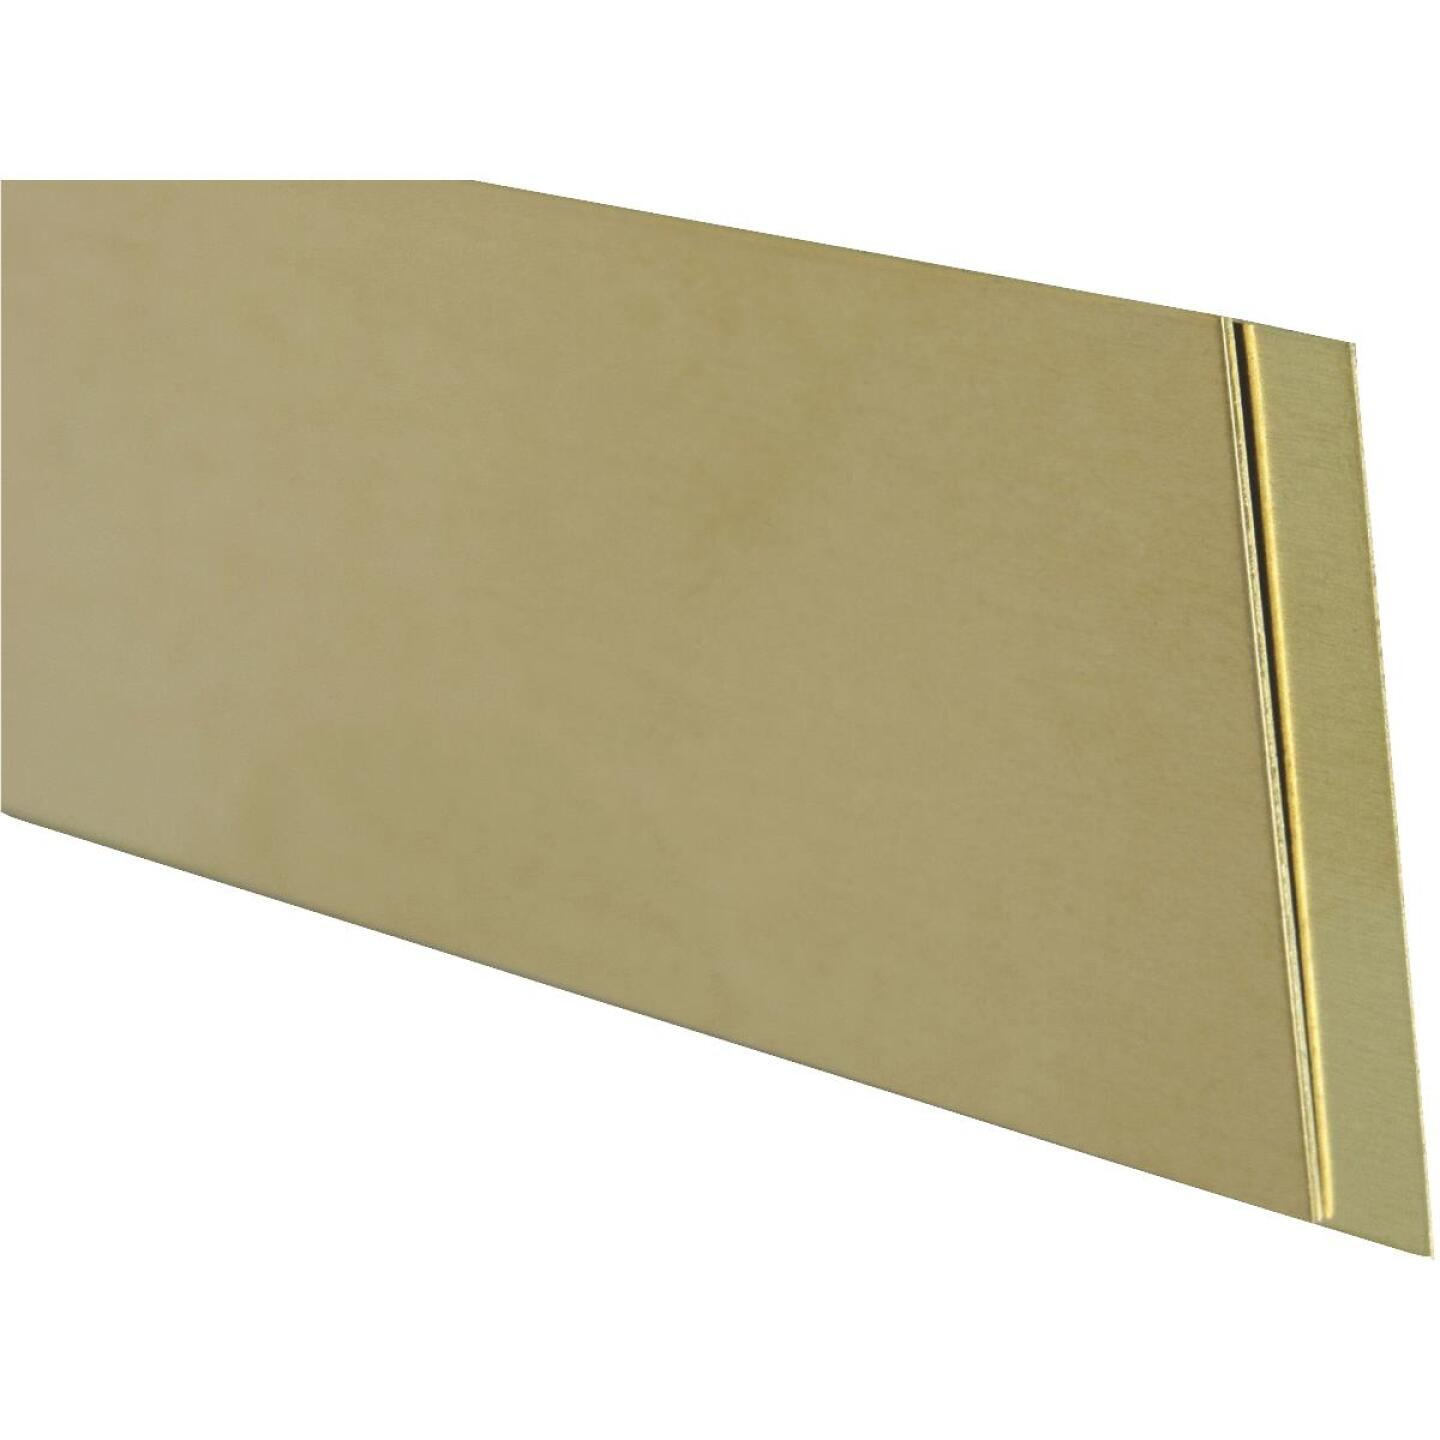 K&S Brass 1 In. x 12 In. Strip Stock Image 1